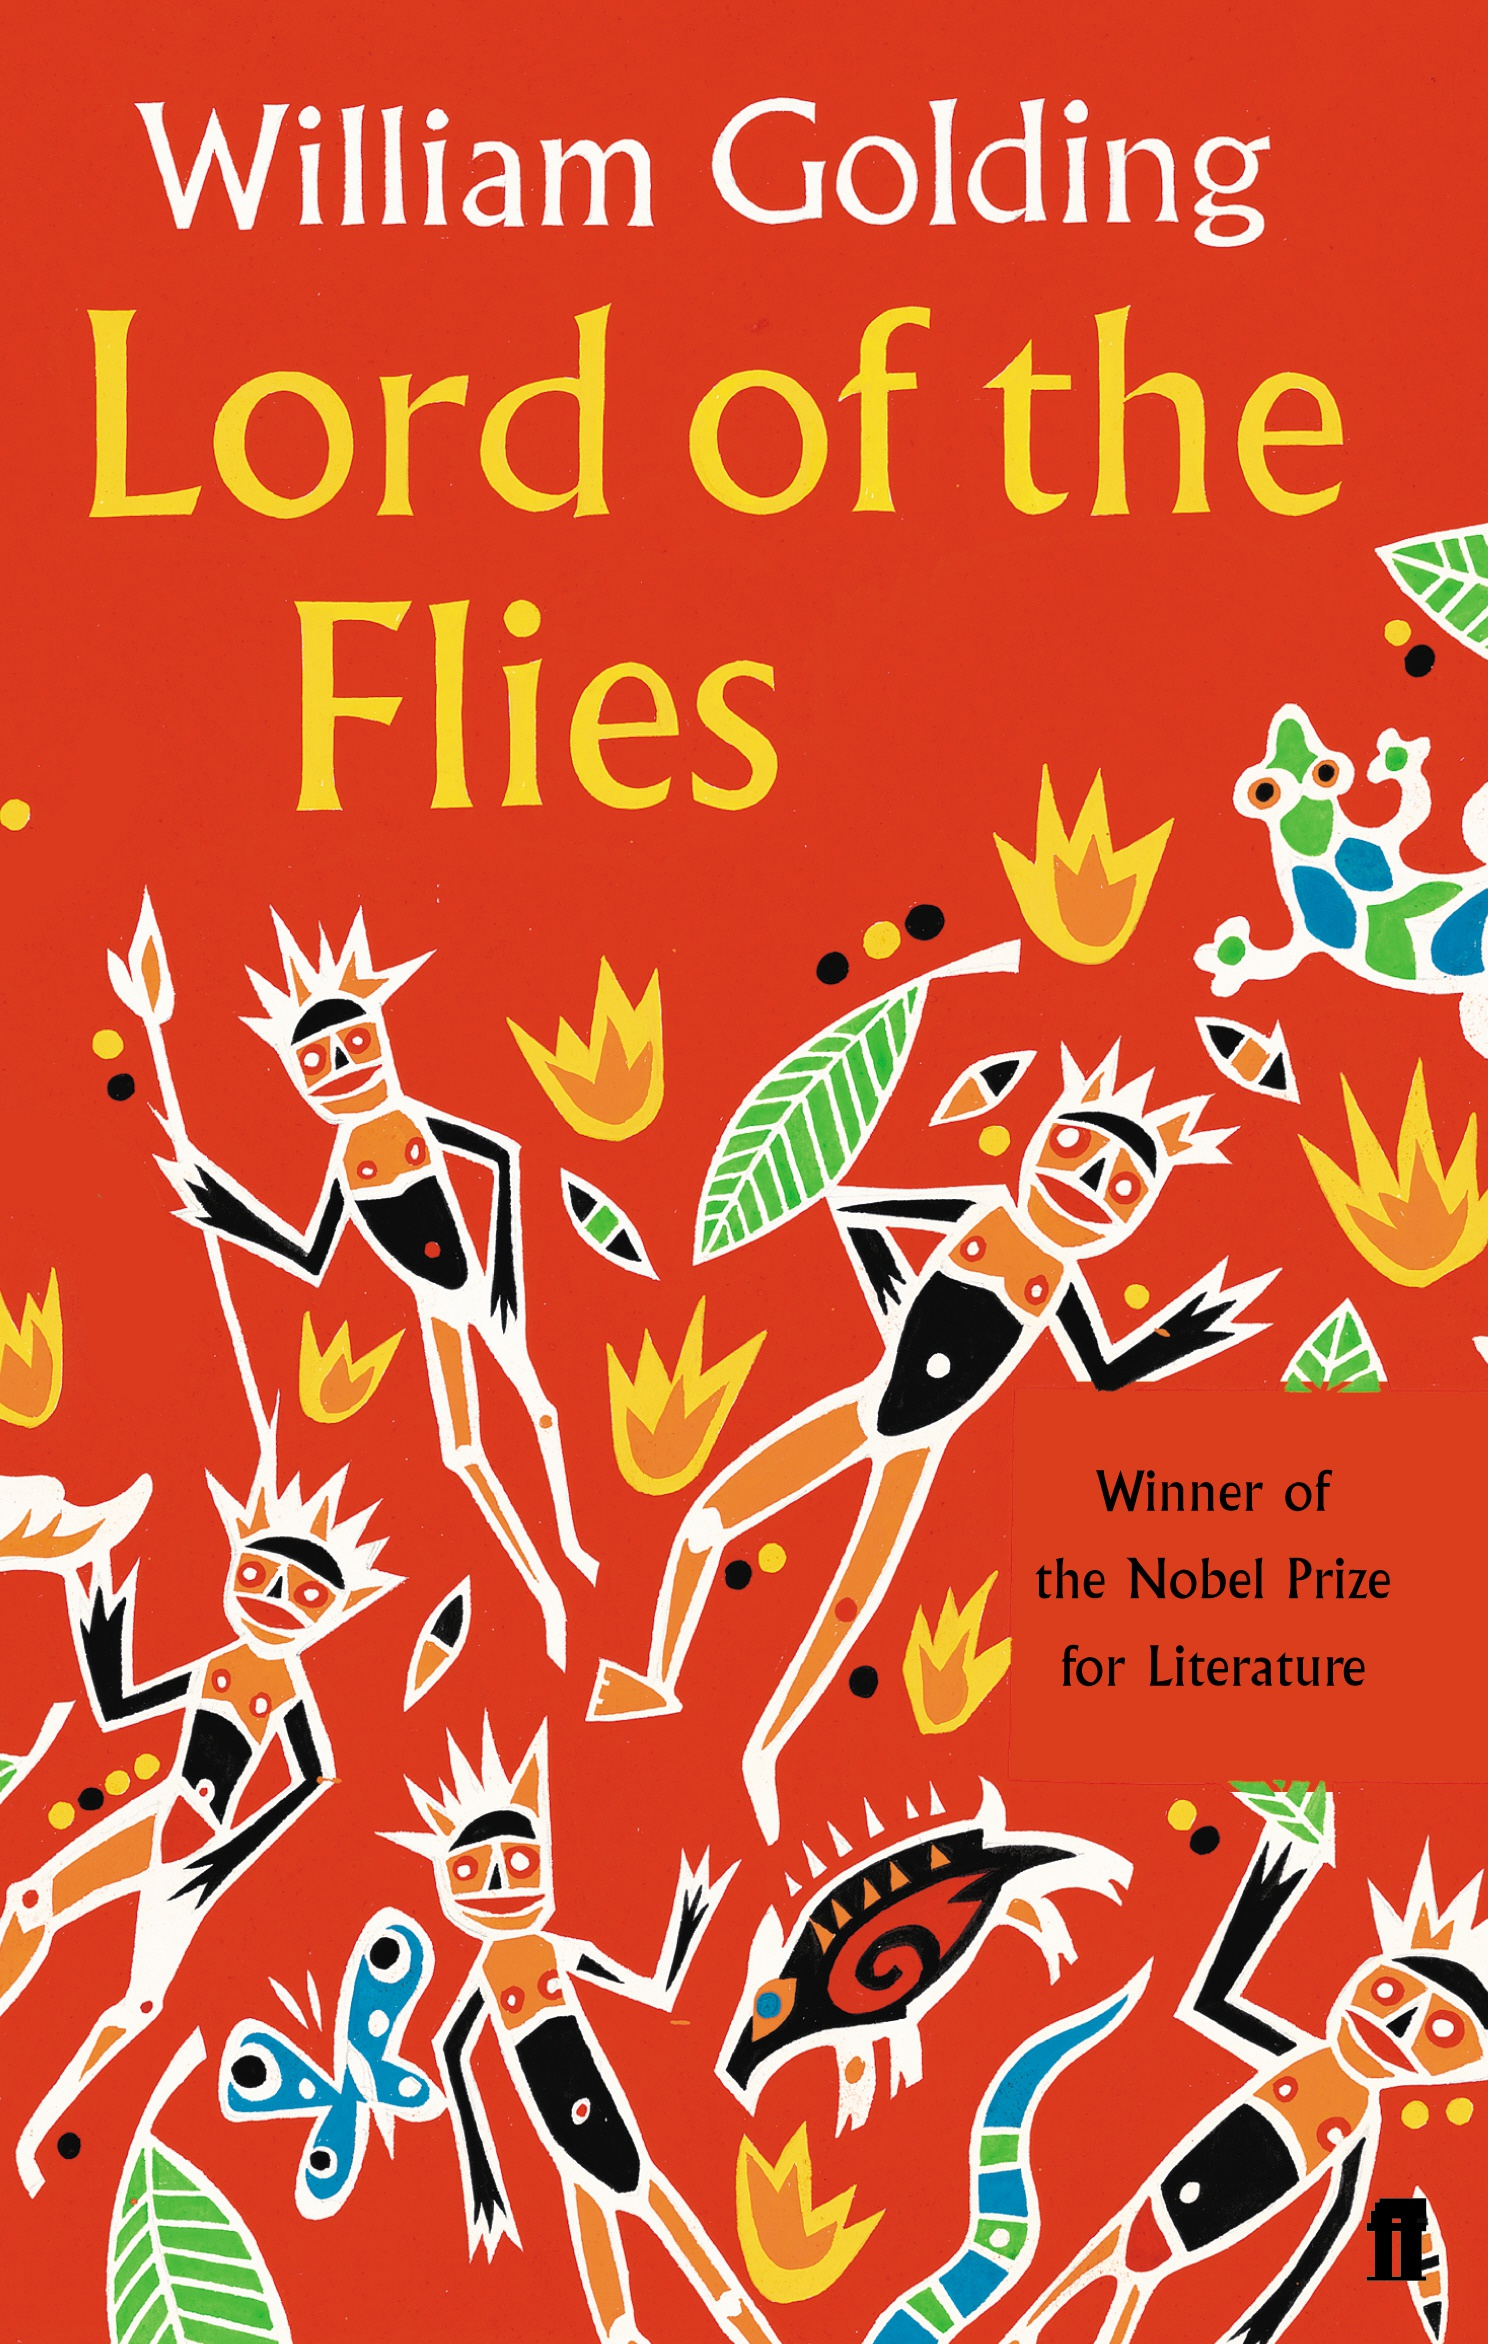 lord of the flies william golding 9780571191475 allen cover